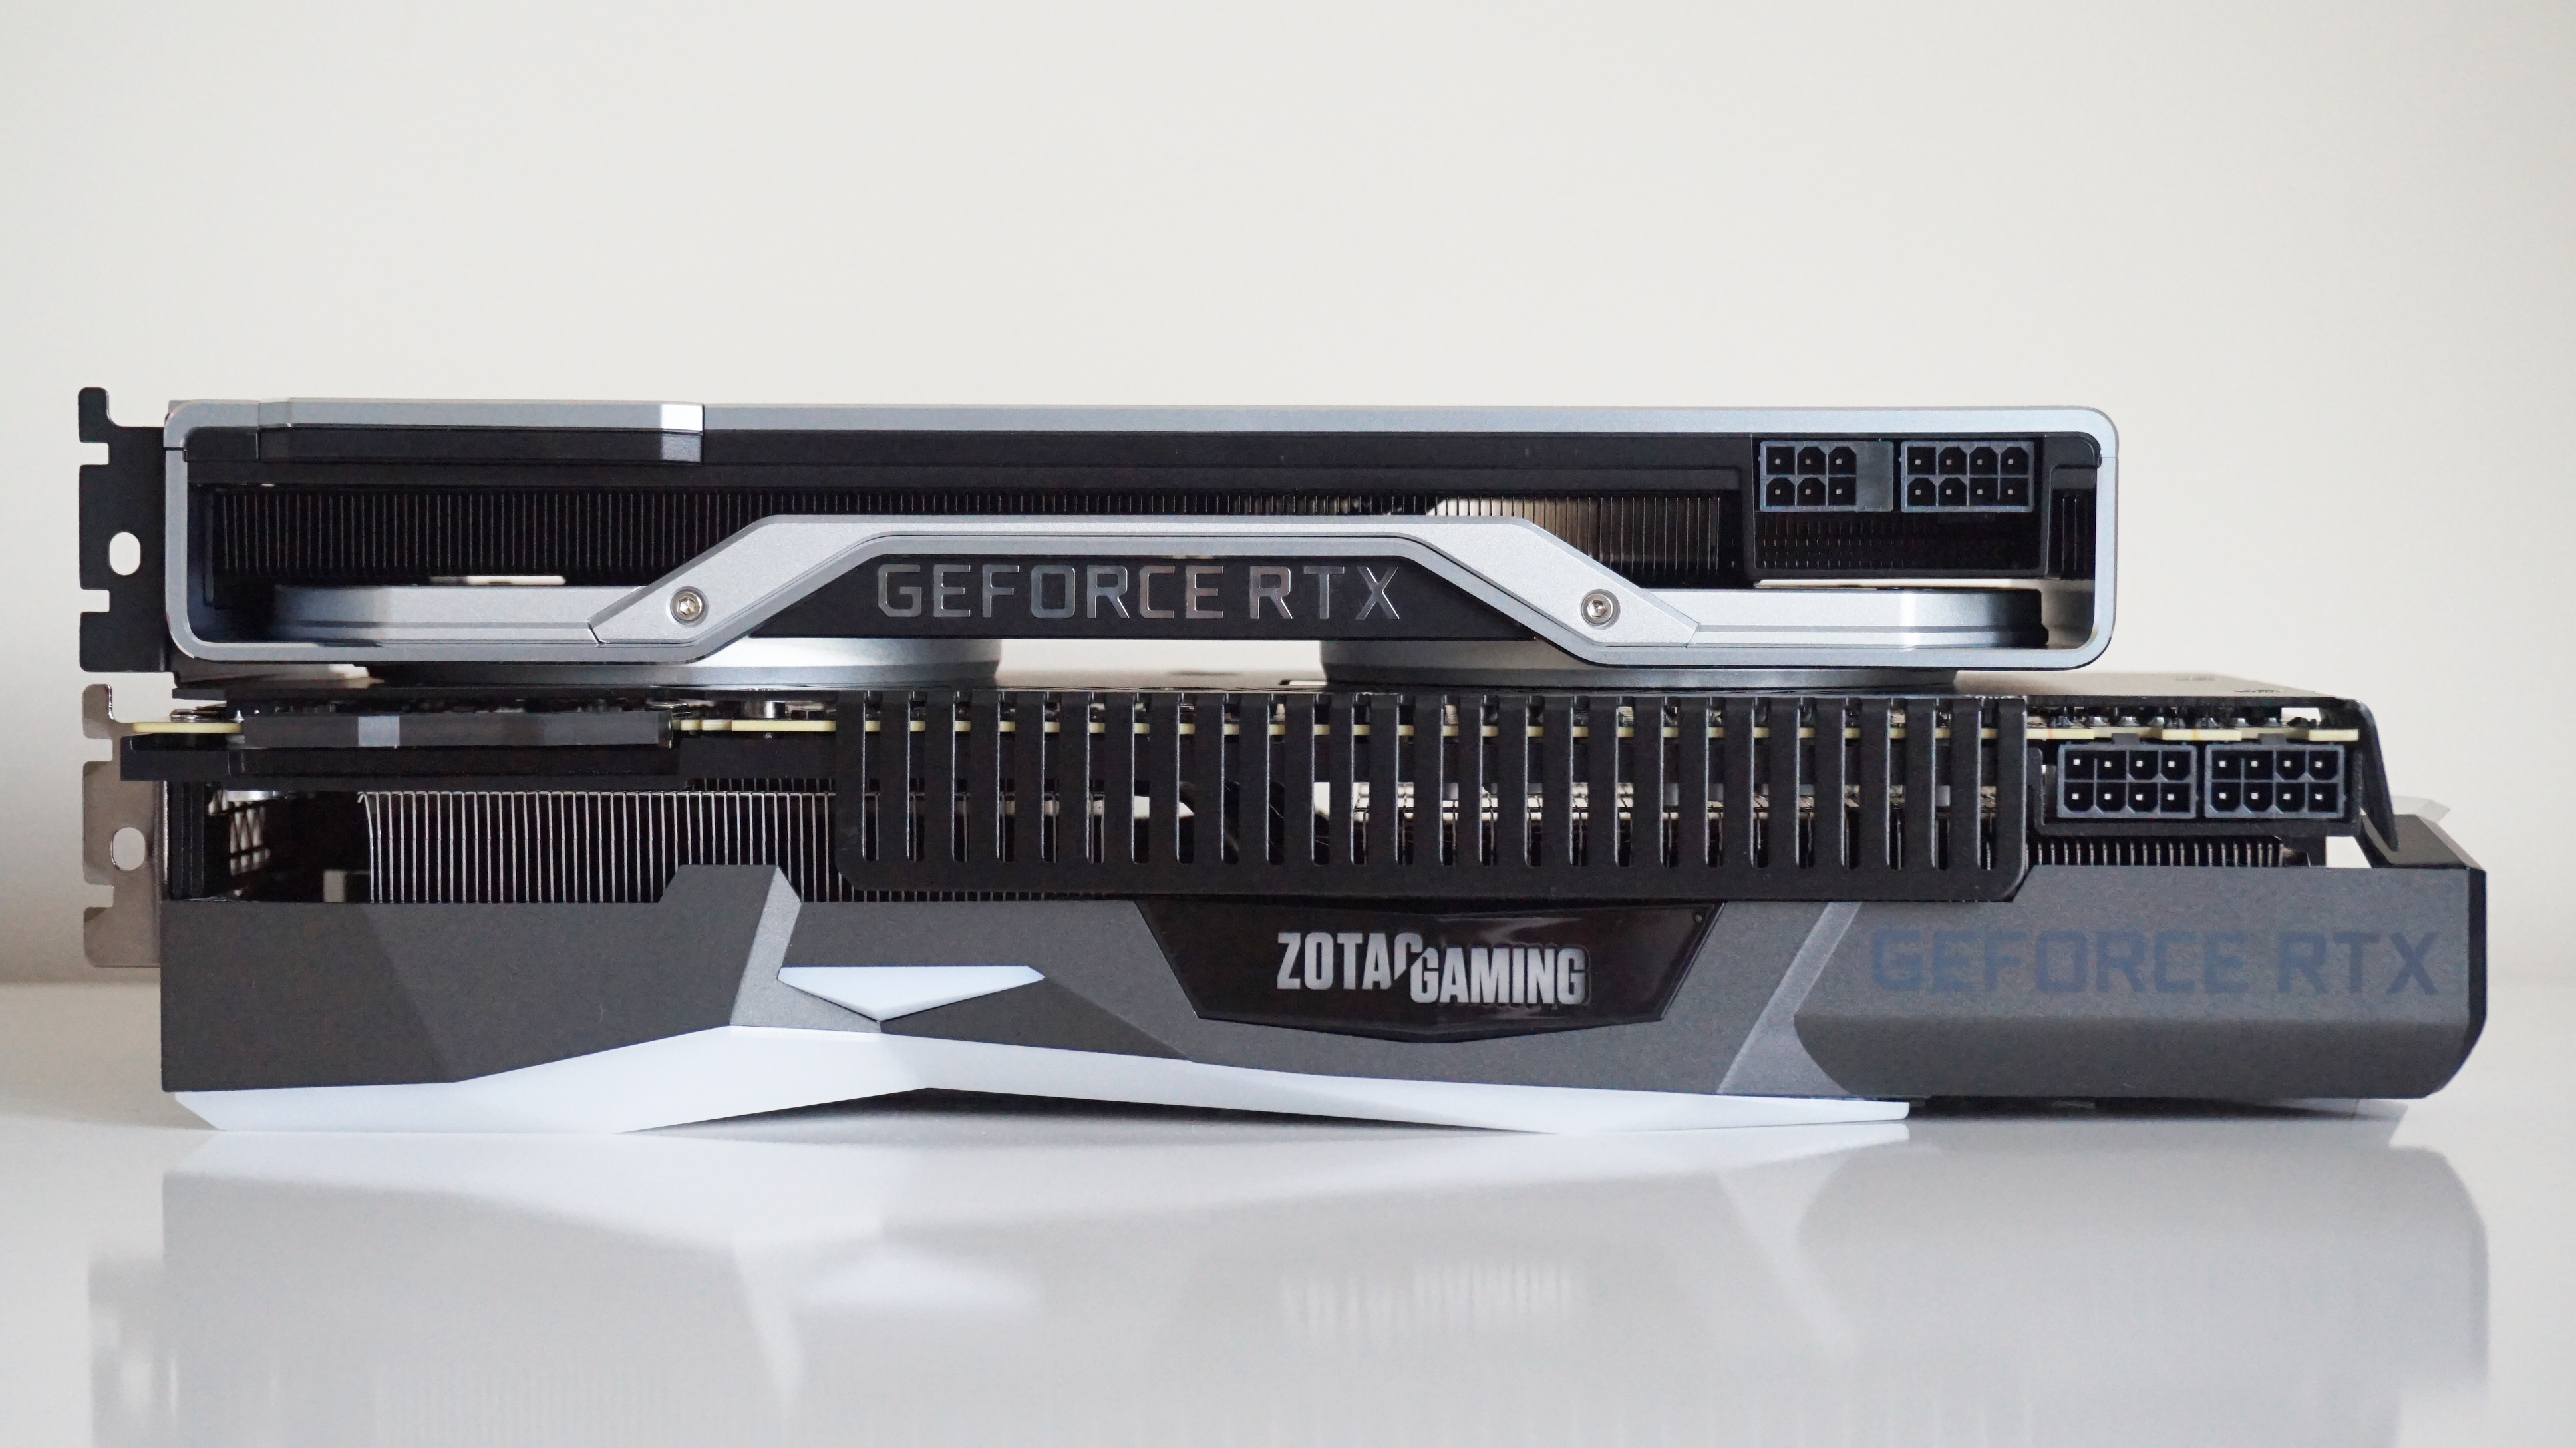 Nvidia RTX 2080 Super benchmarks: Should you pay more for an